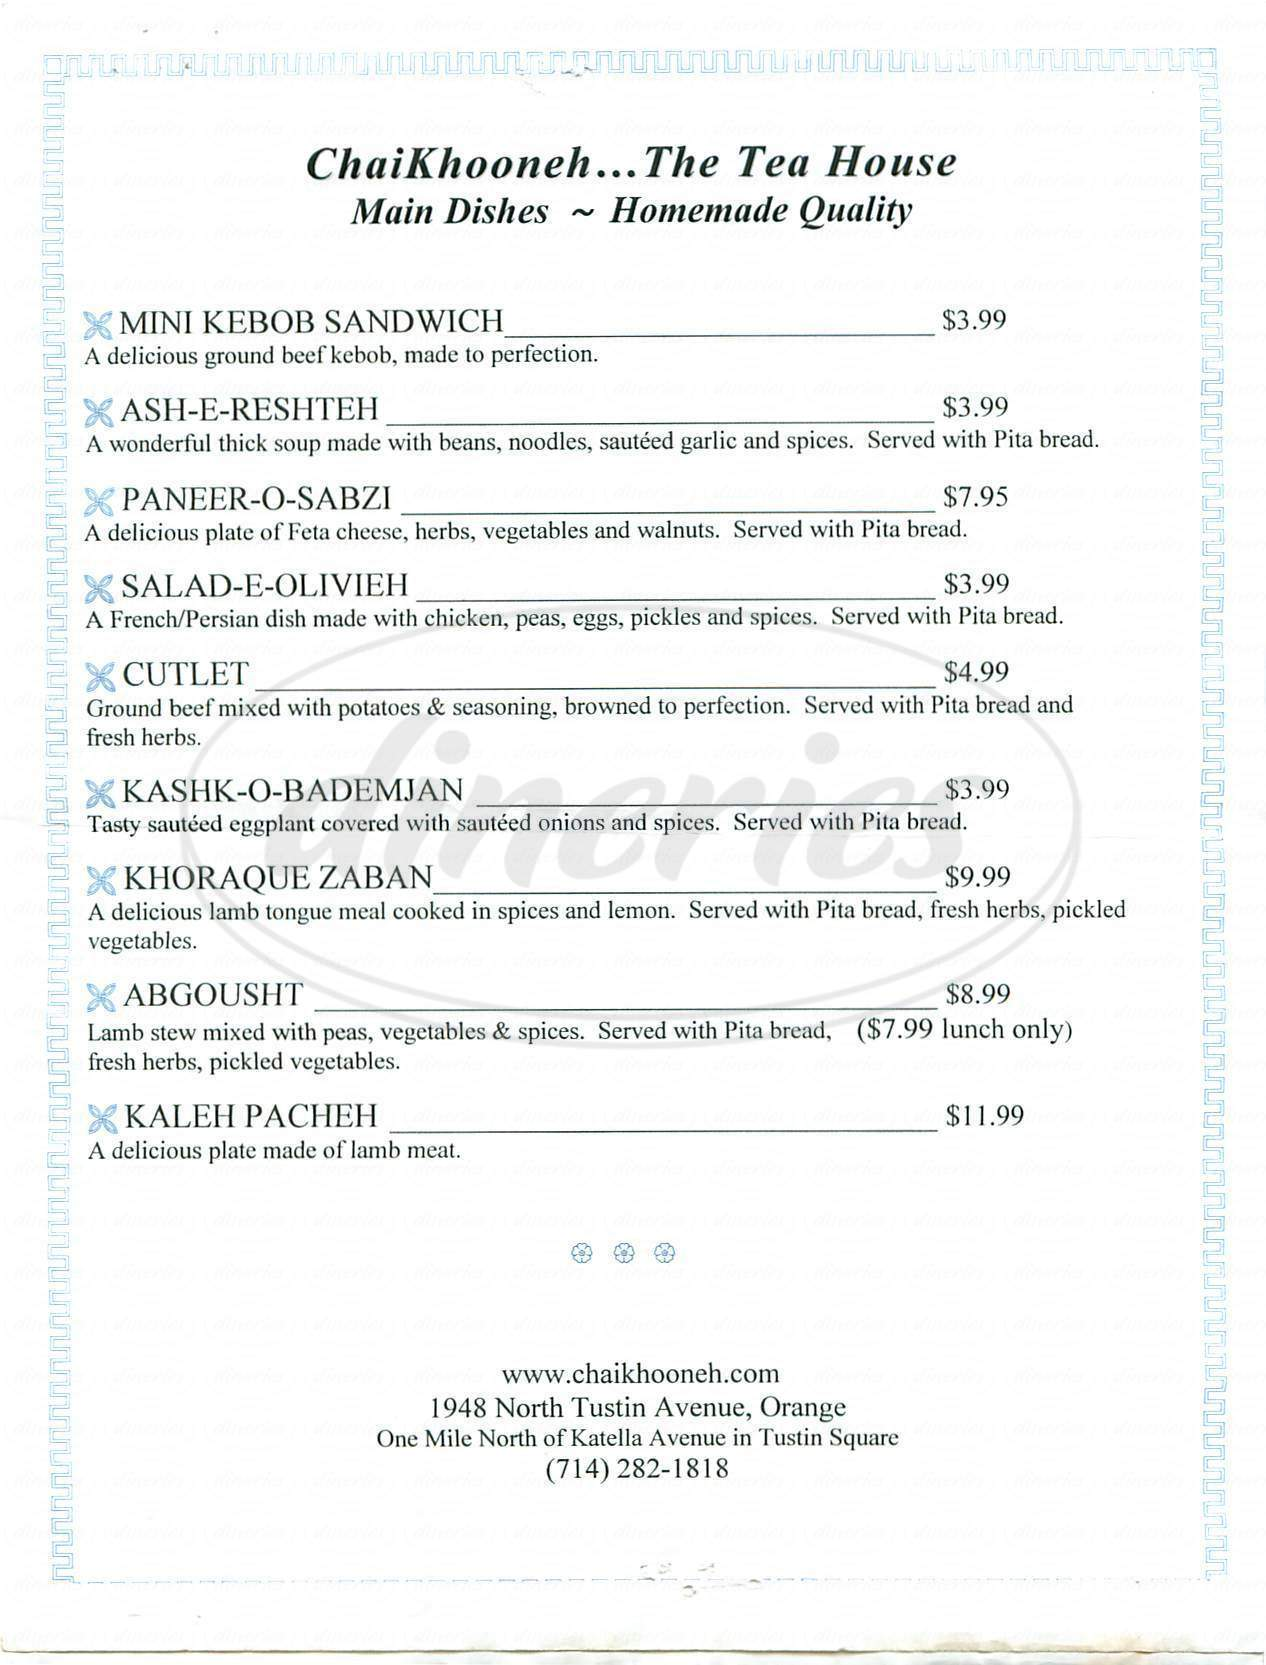 menu for Chai Khooneh Tea House